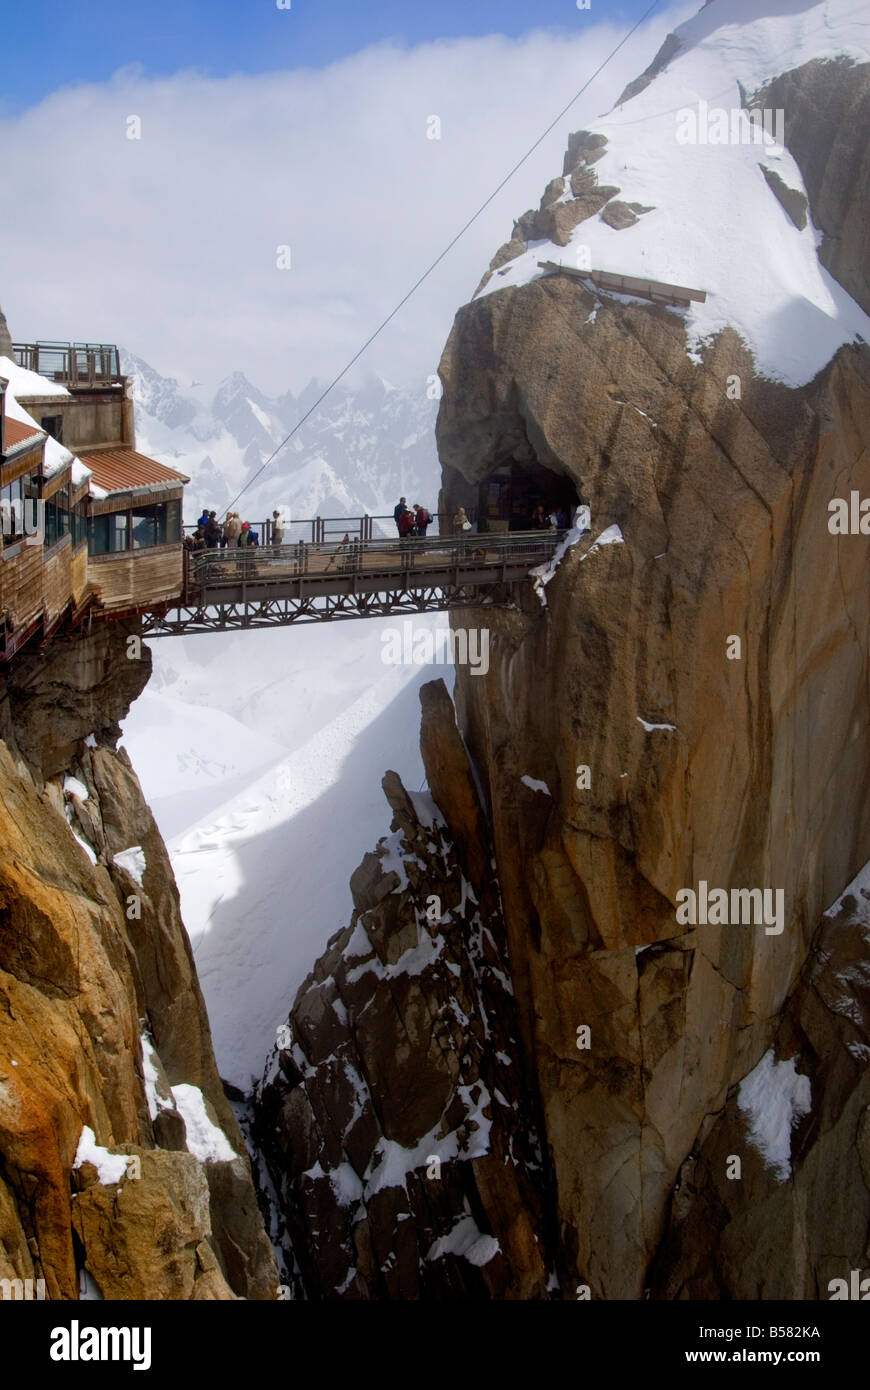 Viewing platform and walkway, Aiguille du Midi, Chamonix-Mont-Blanc, French Alps, France, Europe - Stock Image